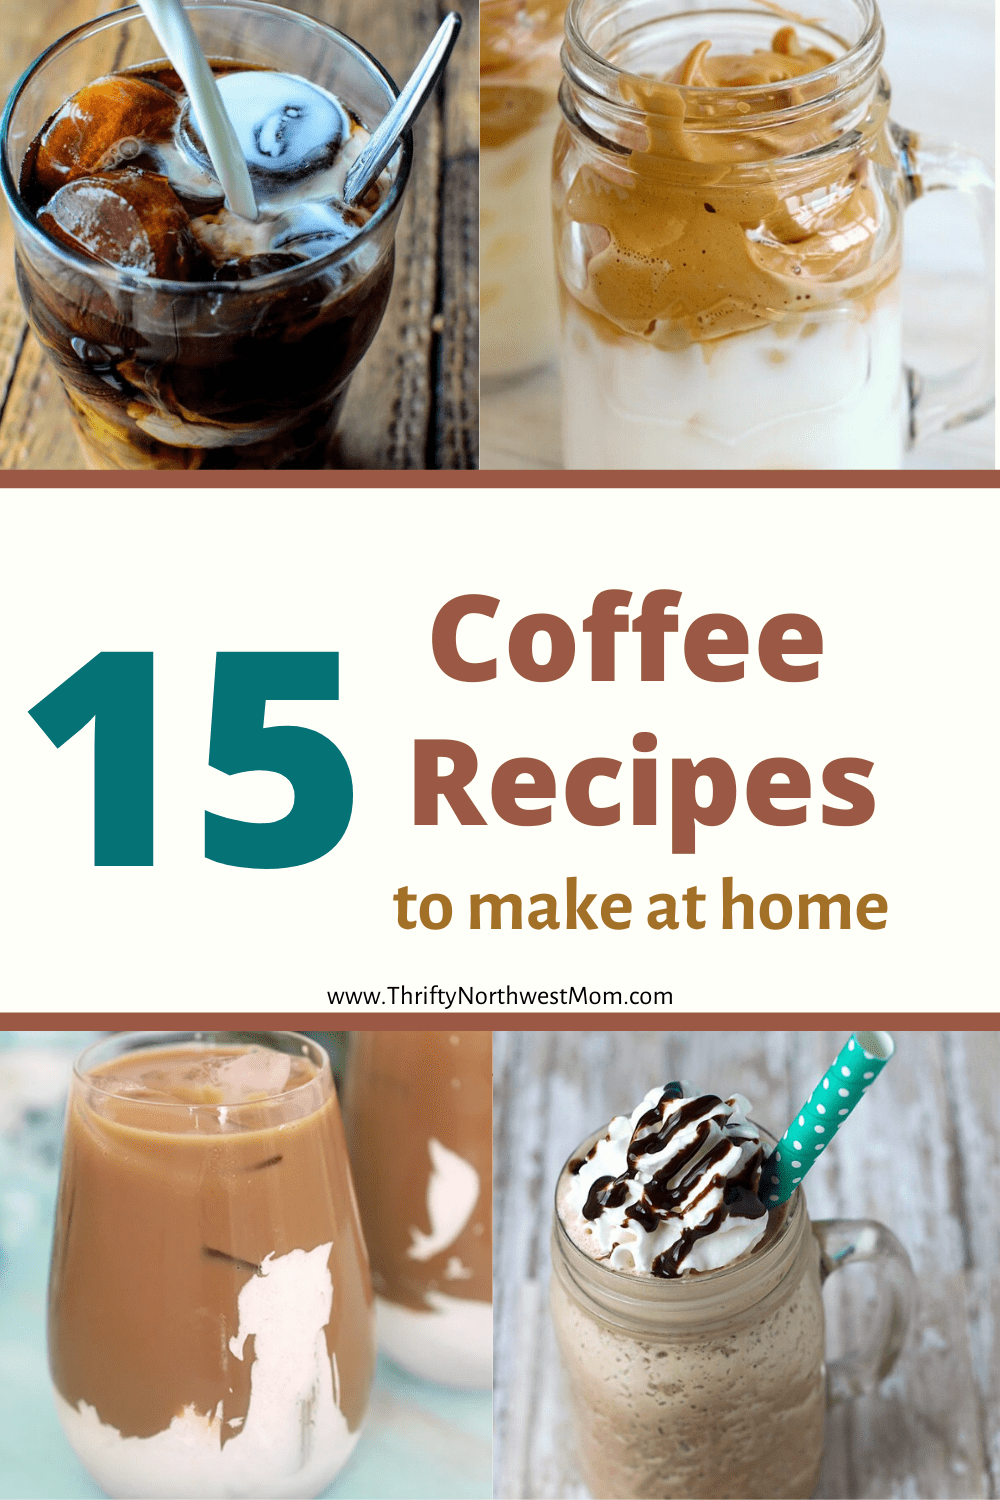 15 Coffee Recipes to make at Home